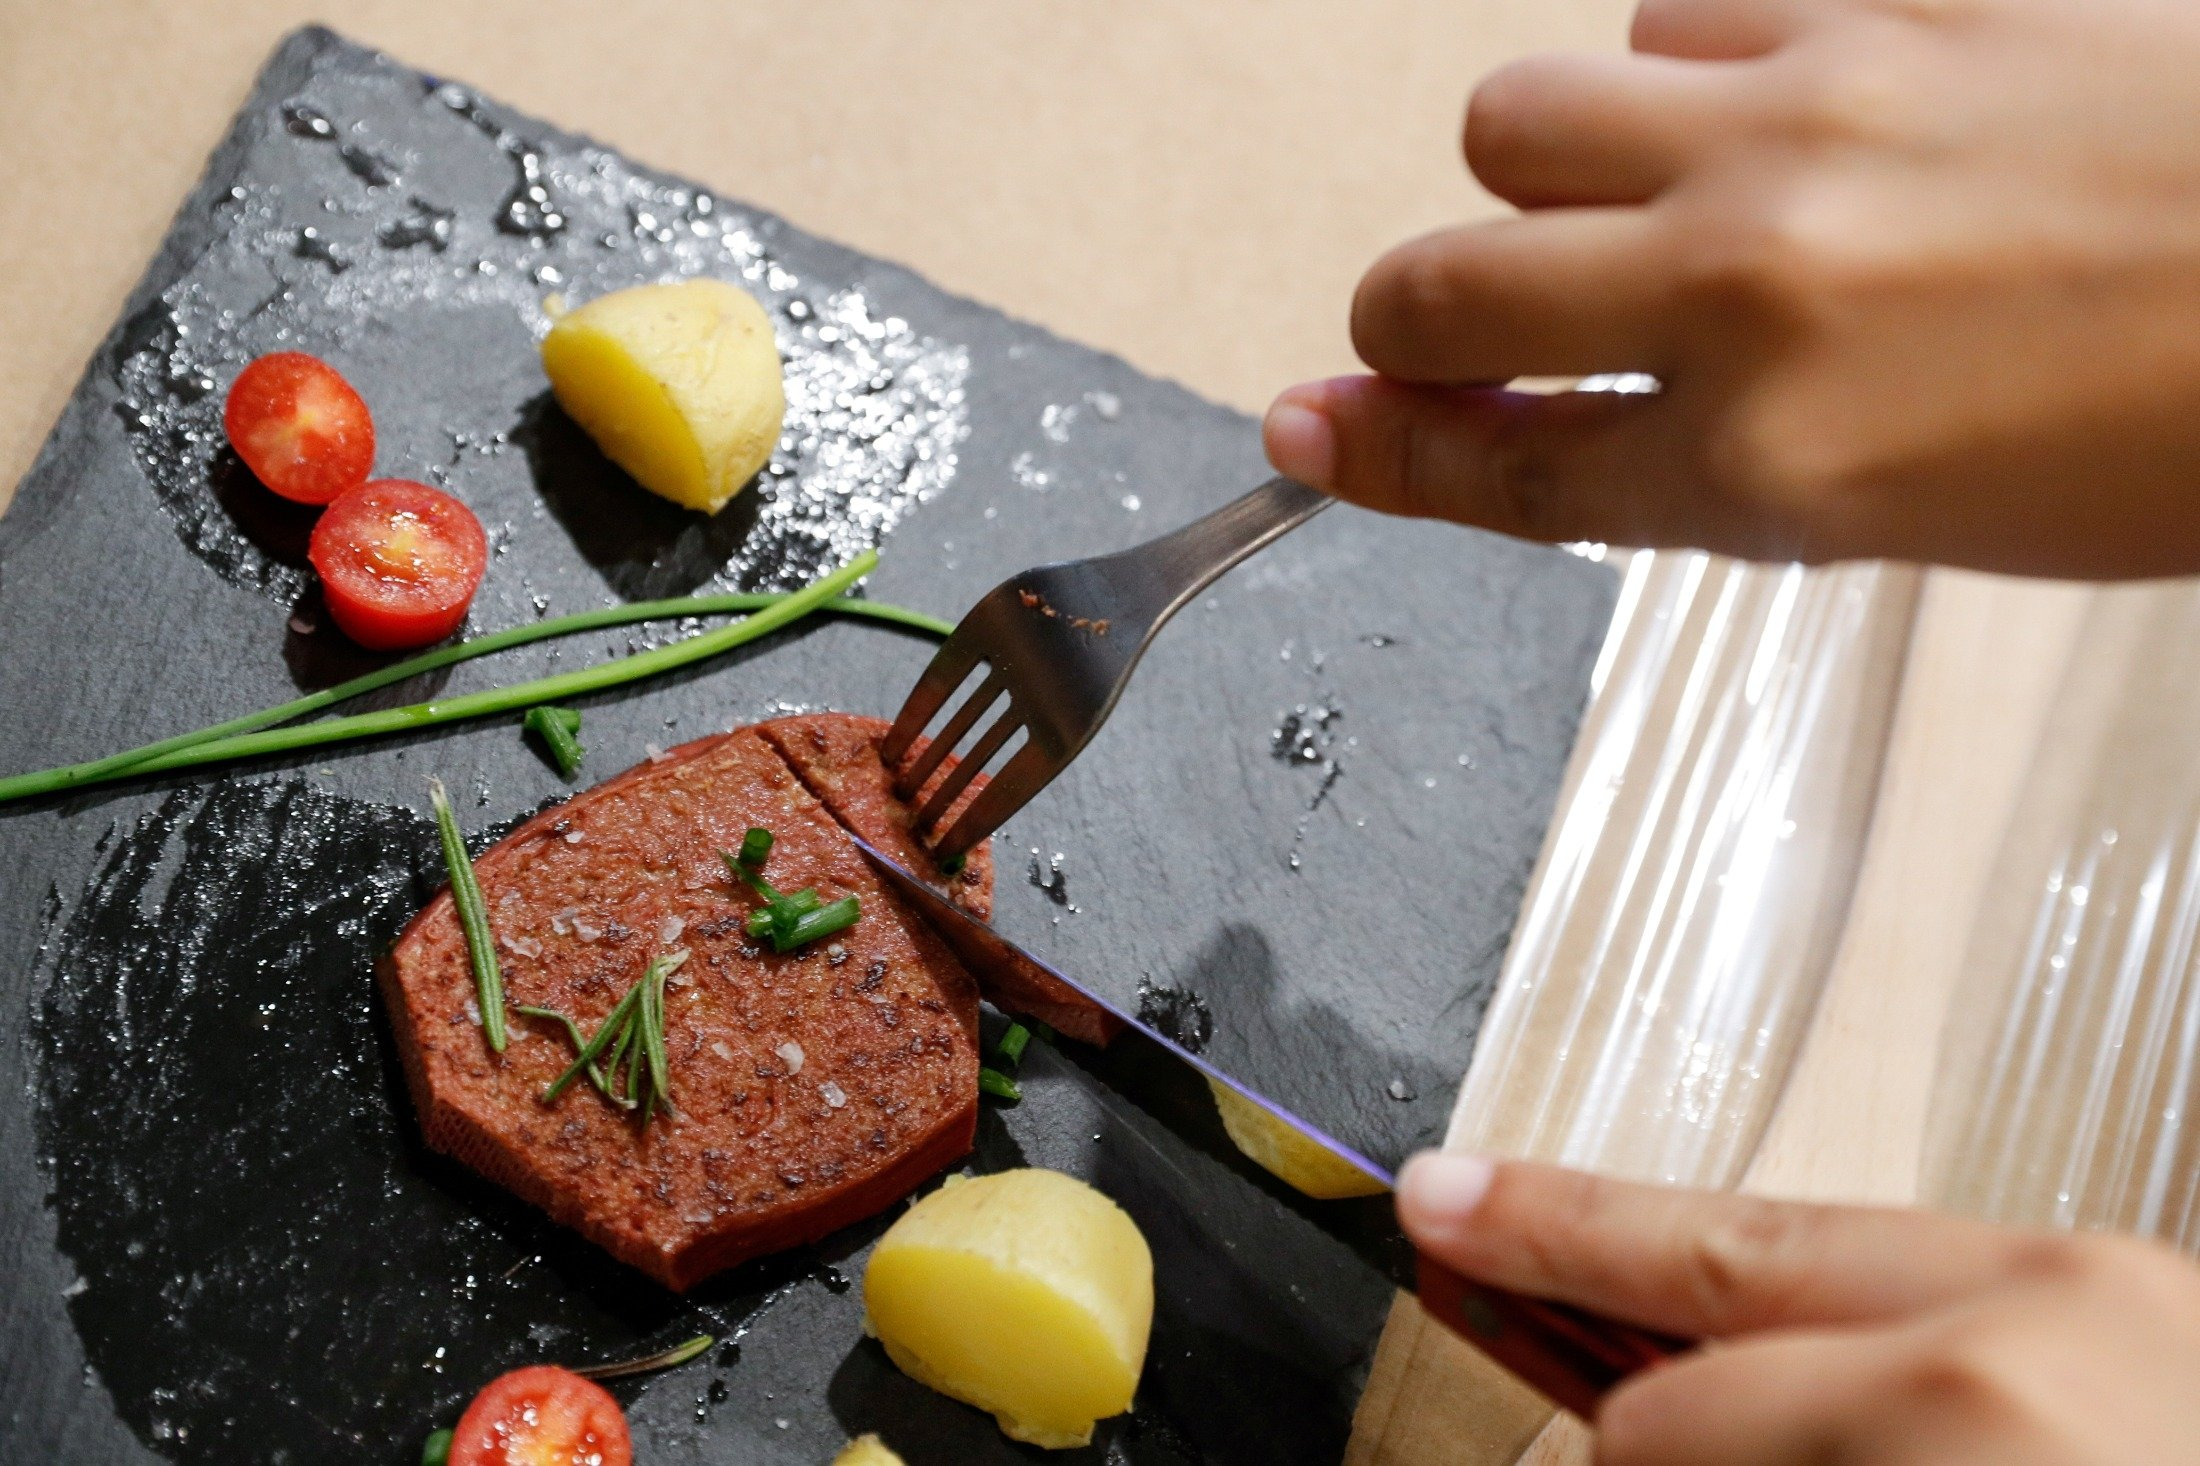 A person cuts a piece of meat printed with a 3D printer by Novameat, during the Mobile World Congress (MWC) in Barcelona, Spain, June 29, 2021. (Reuters Photo)